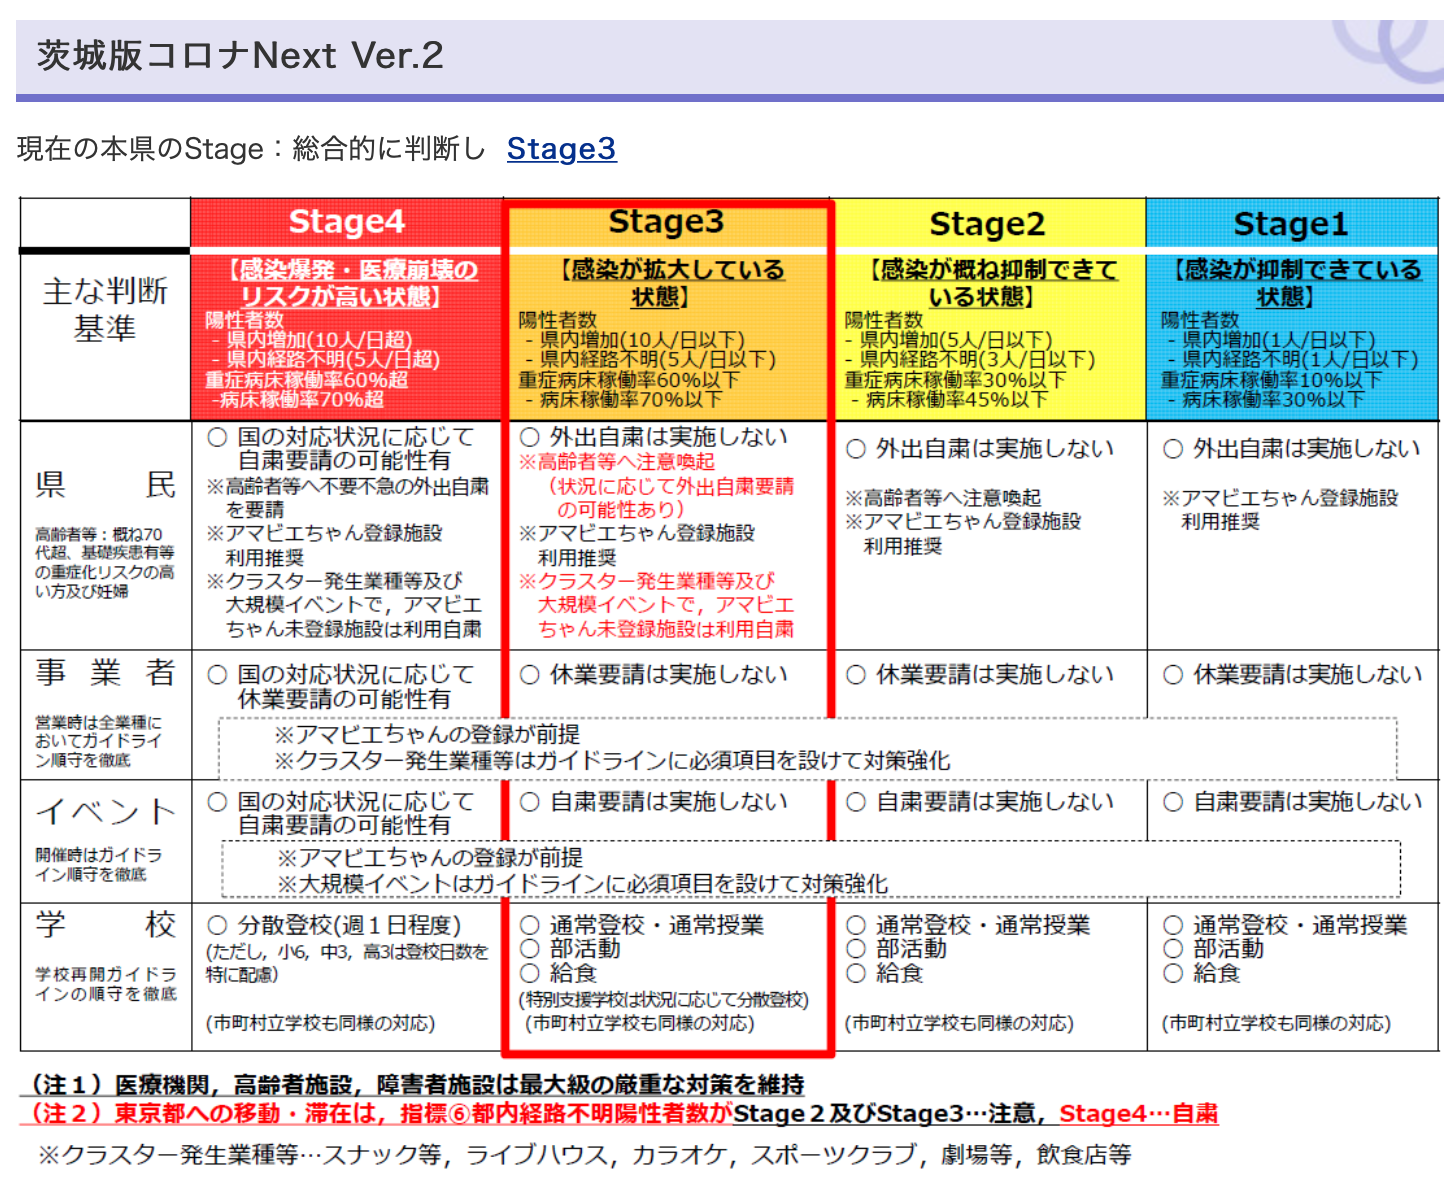 20200731stage3.png